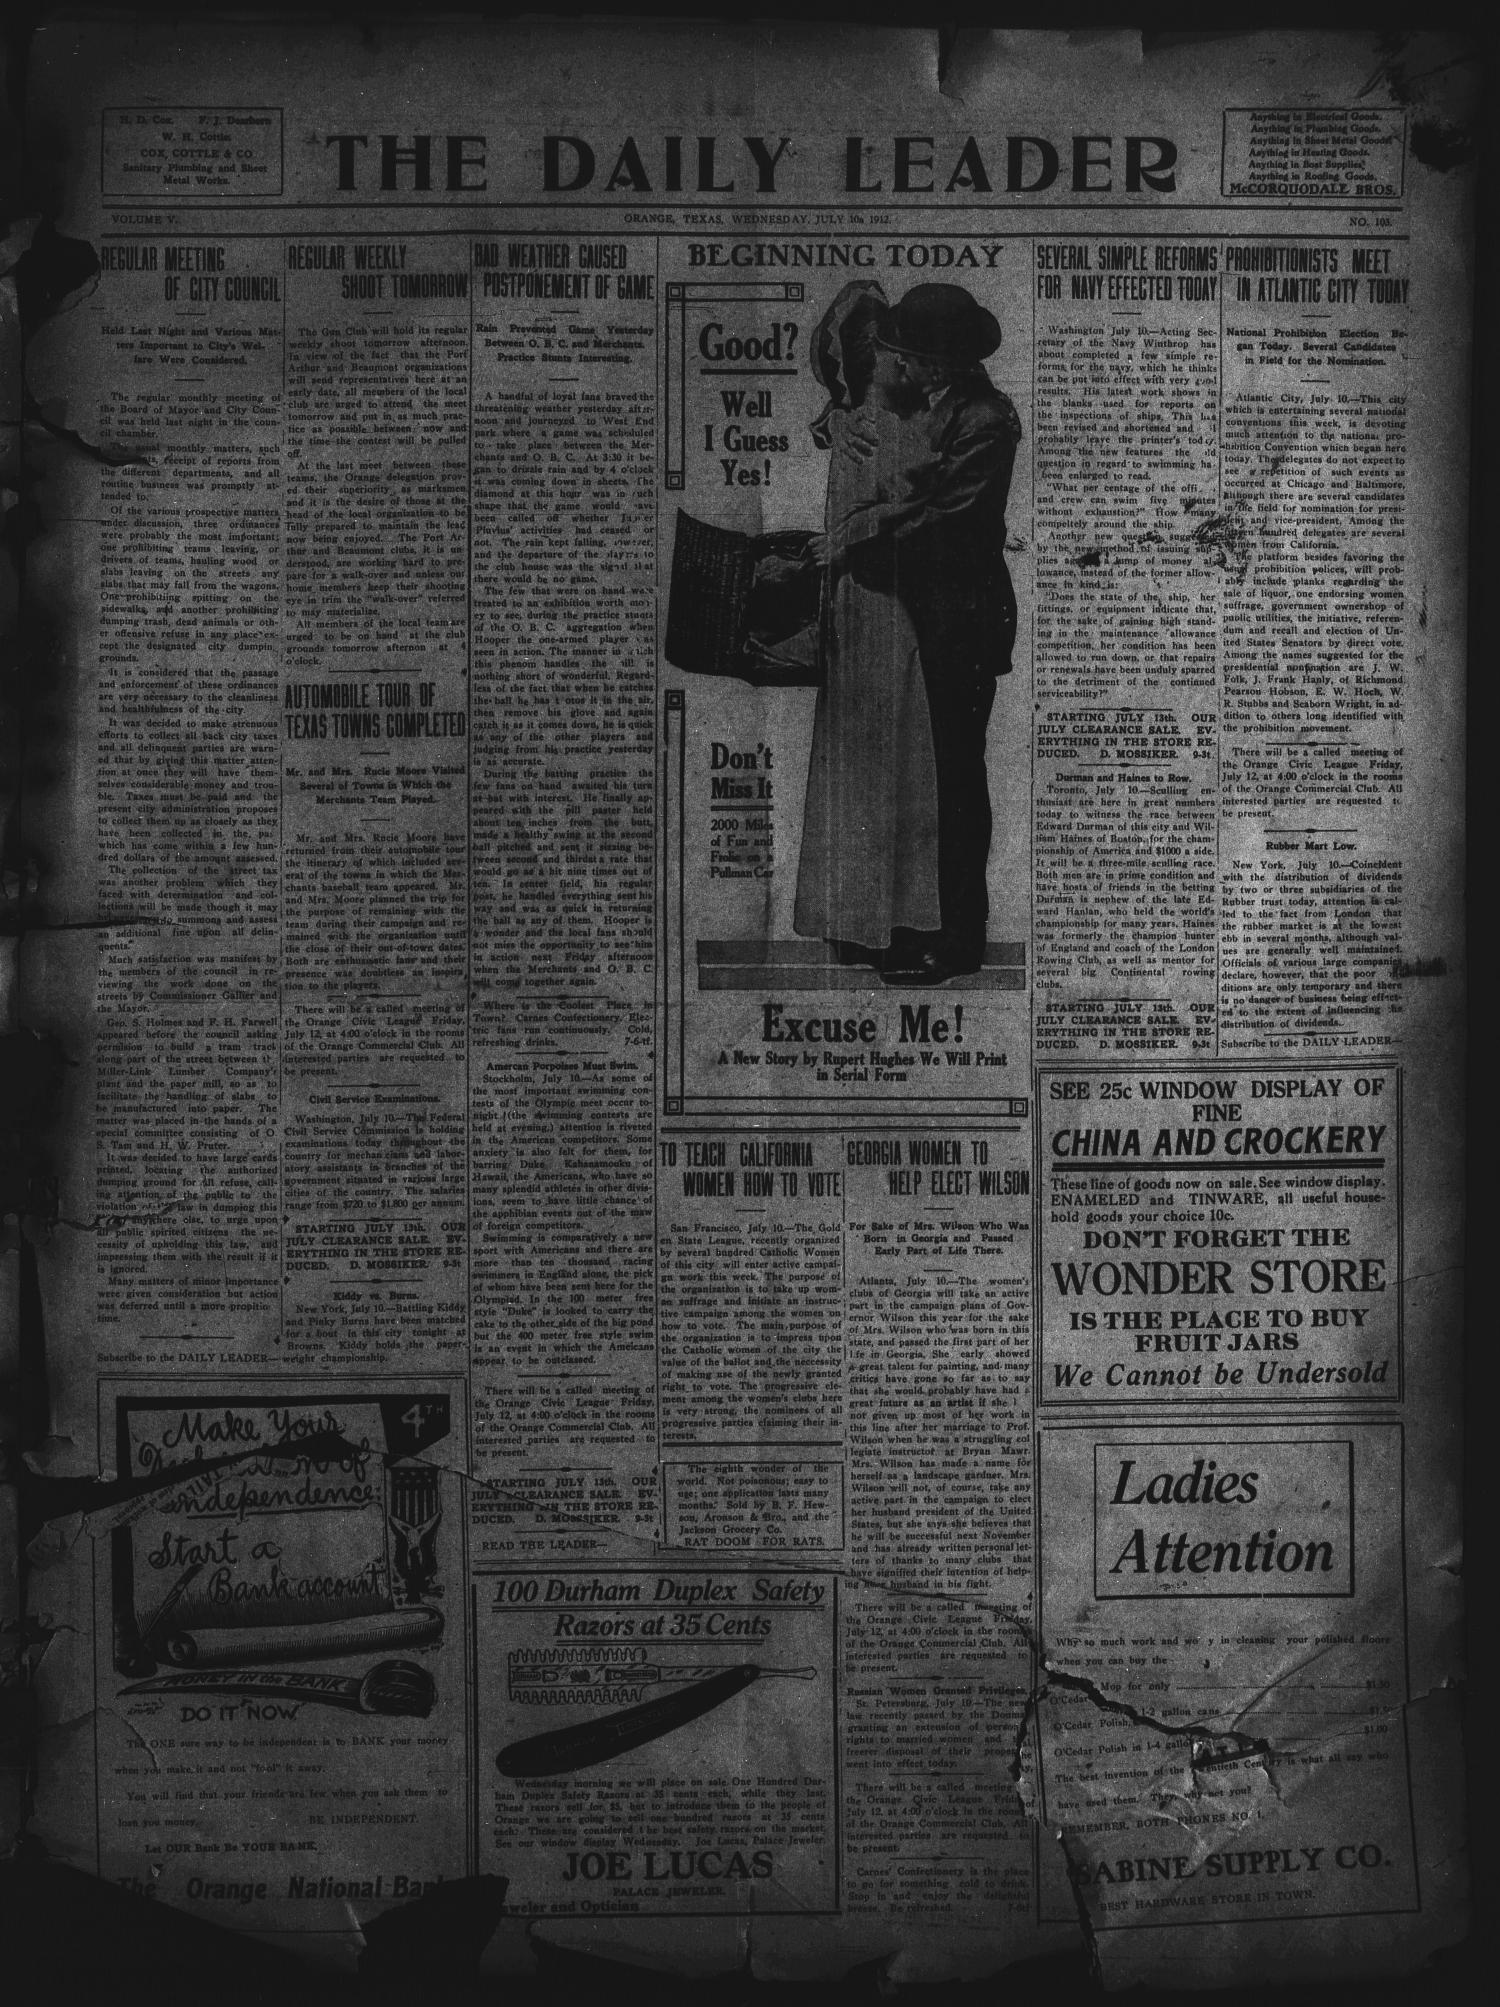 The Daily Leader. (Orange, Tex.), Vol. 5, No. 103, Ed. 1 Wednesday, July 10, 1912                                                                                                      [Sequence #]: 1 of 4